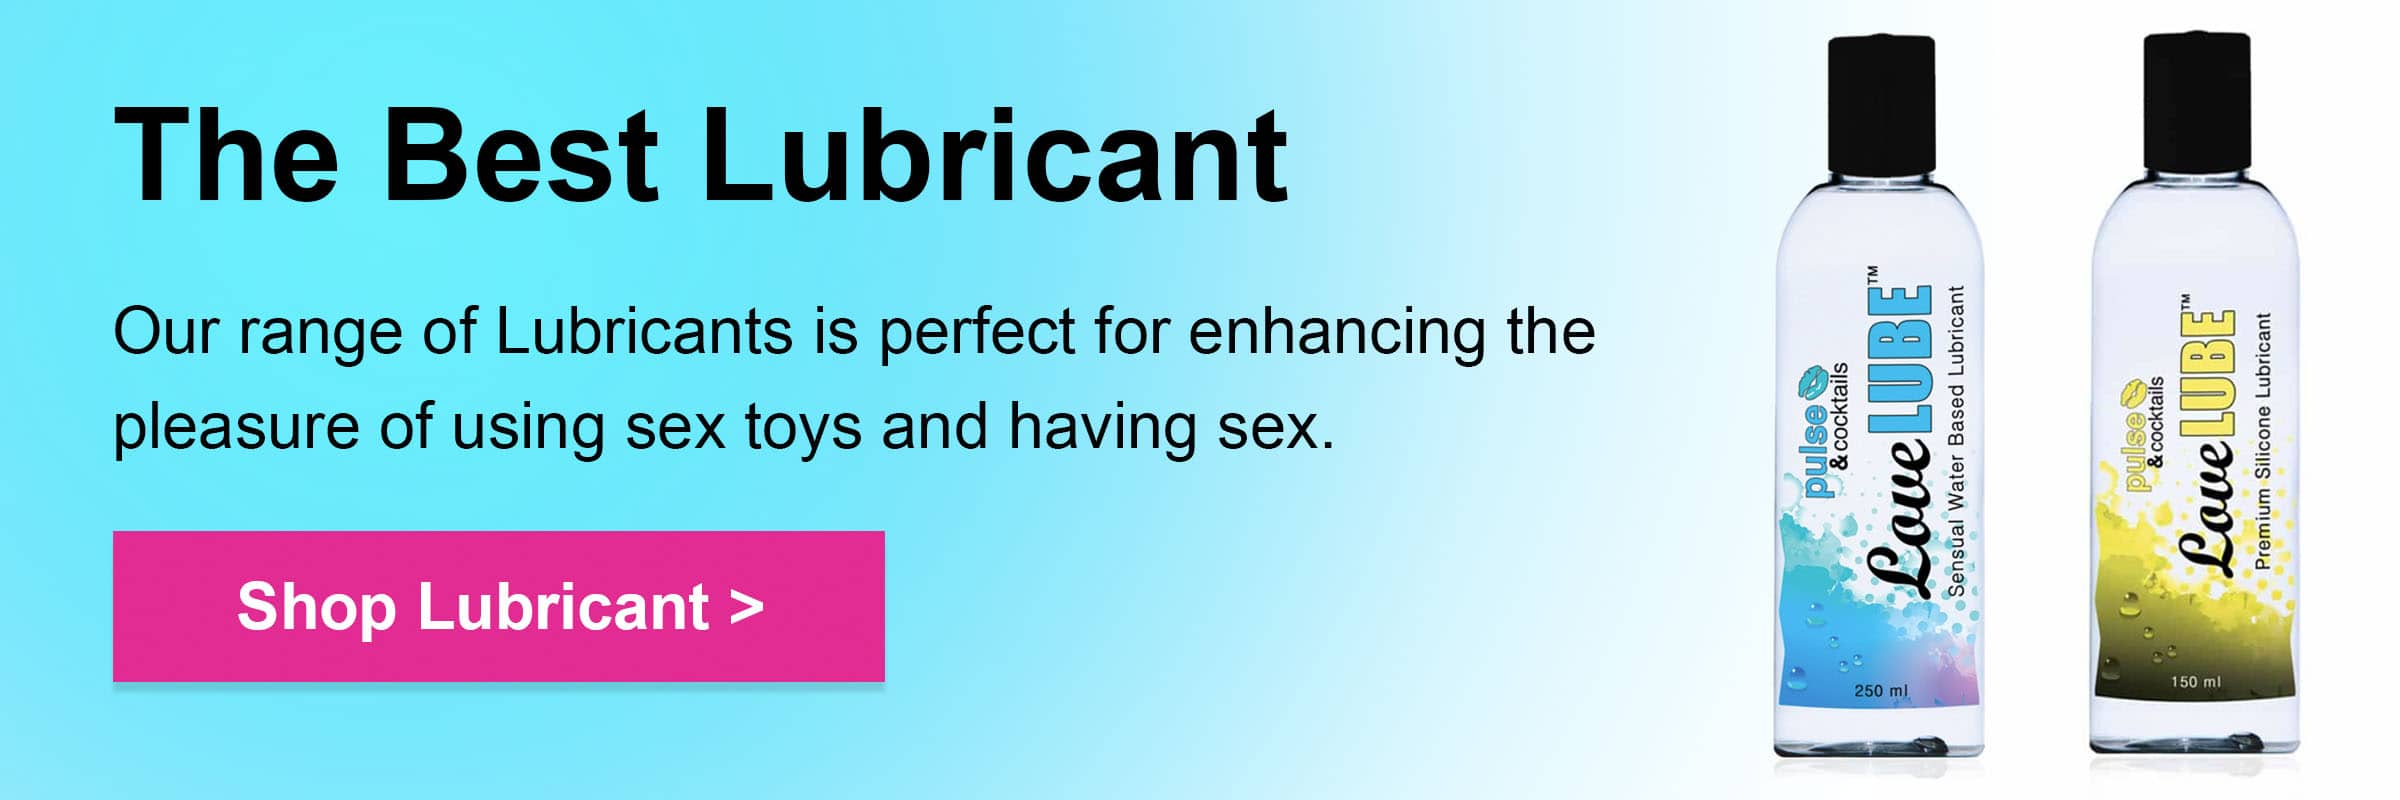 Shop lubricant for sex toys pulse and cocktails